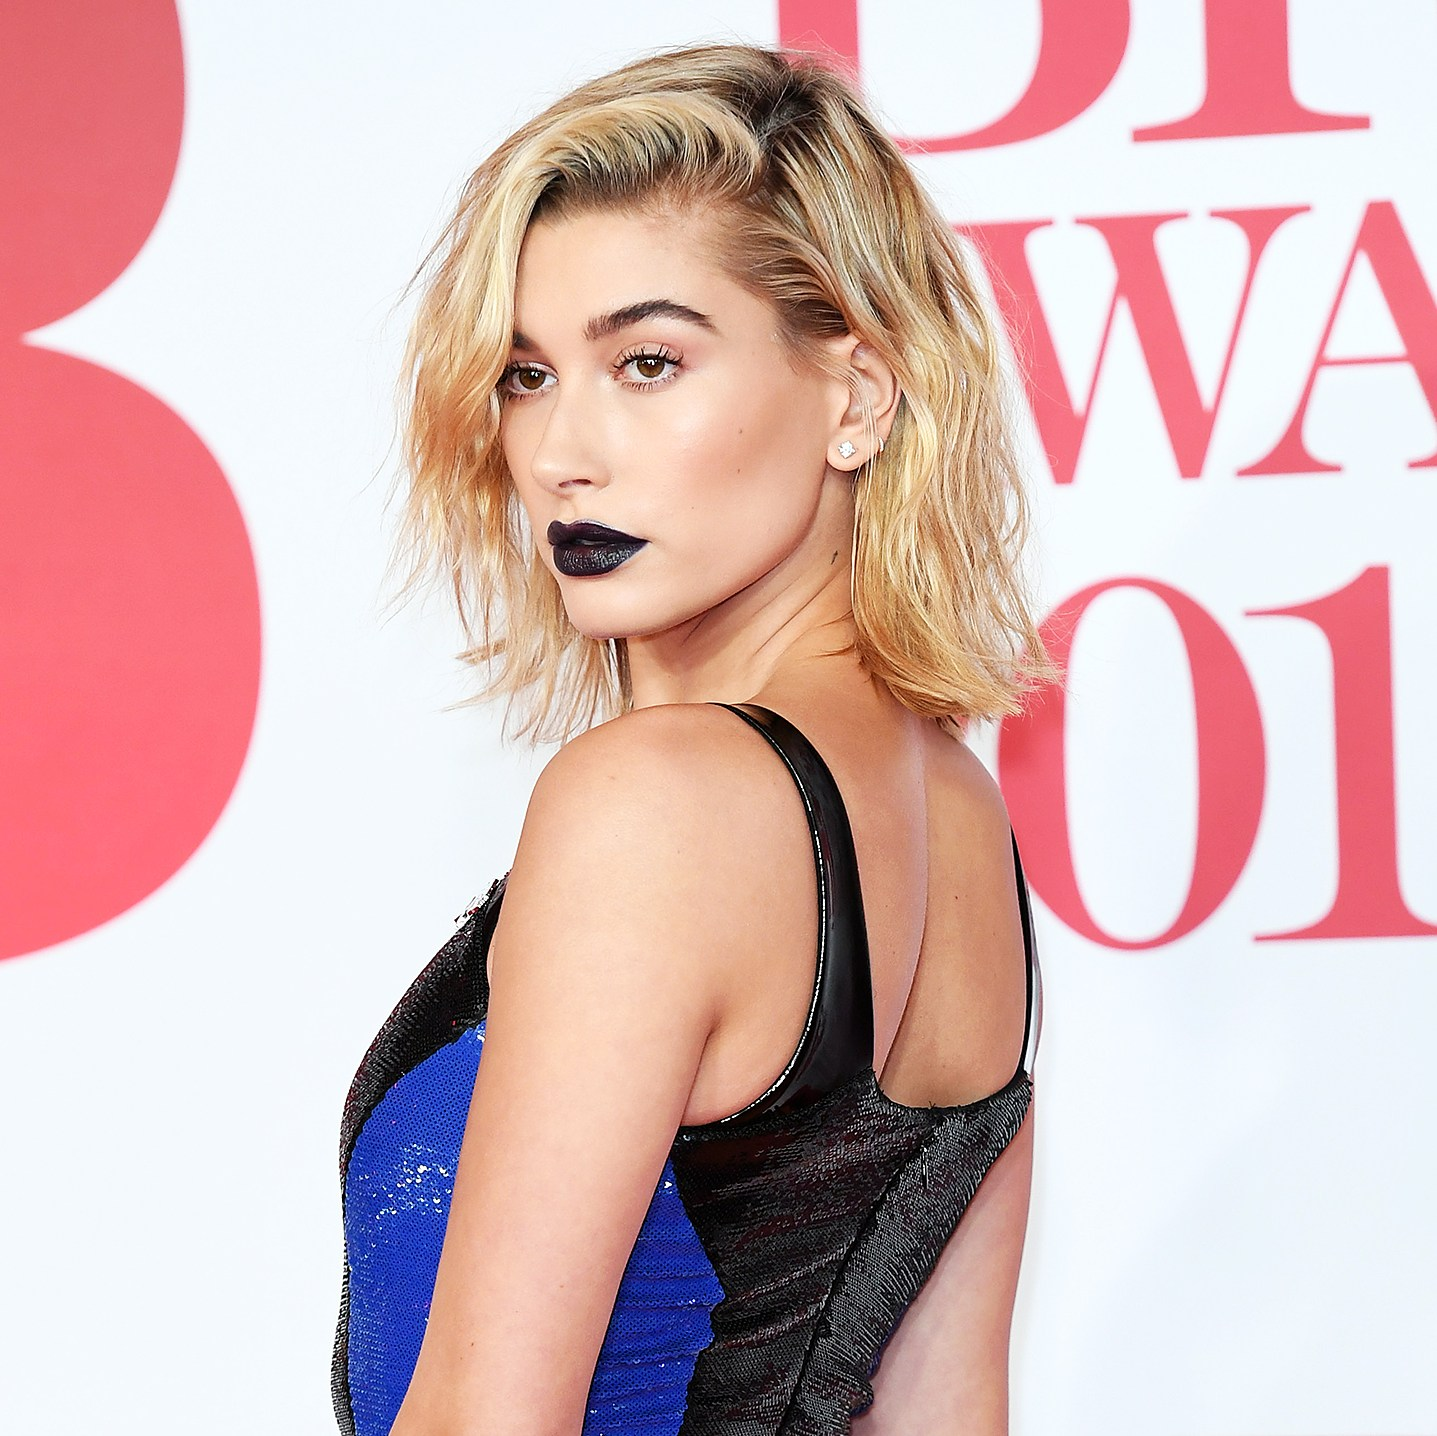 Hailey Baldwin The BRIT Awards 2018